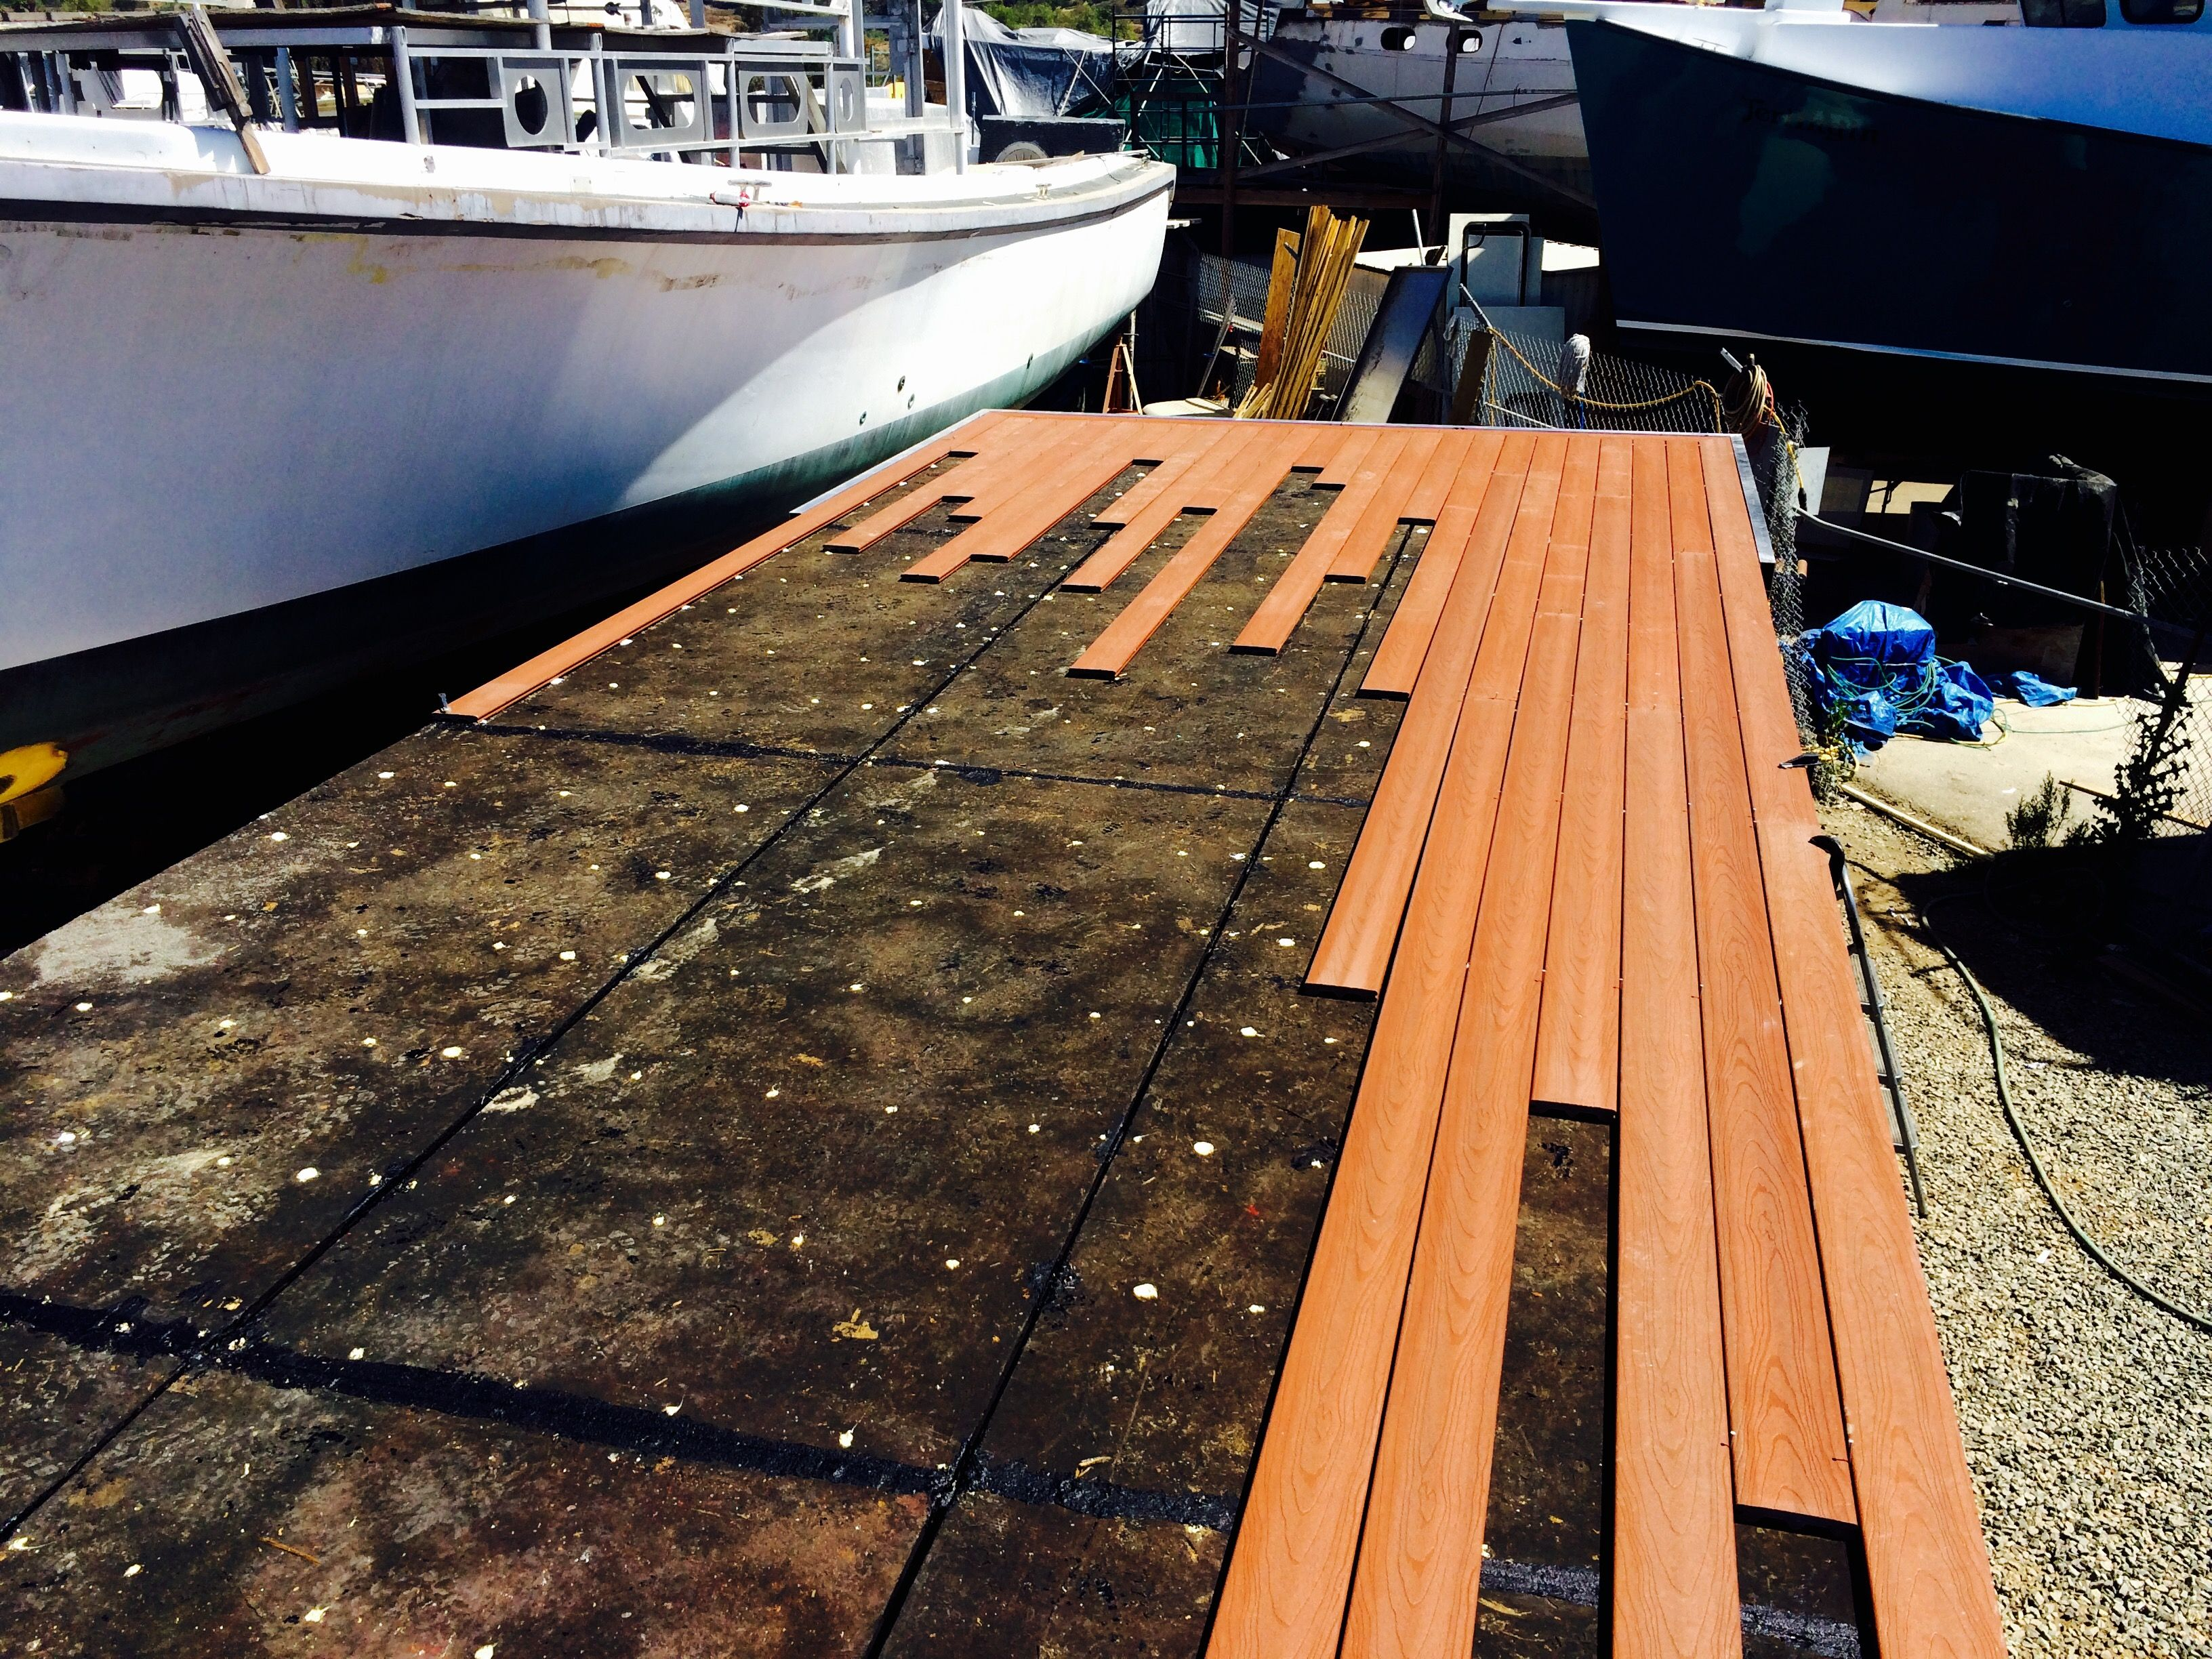 Composite Decking Www Sandiegopontoon Com San Diego Pontoon Boat Rental Pontoon Boat Boat Rental Pontoon